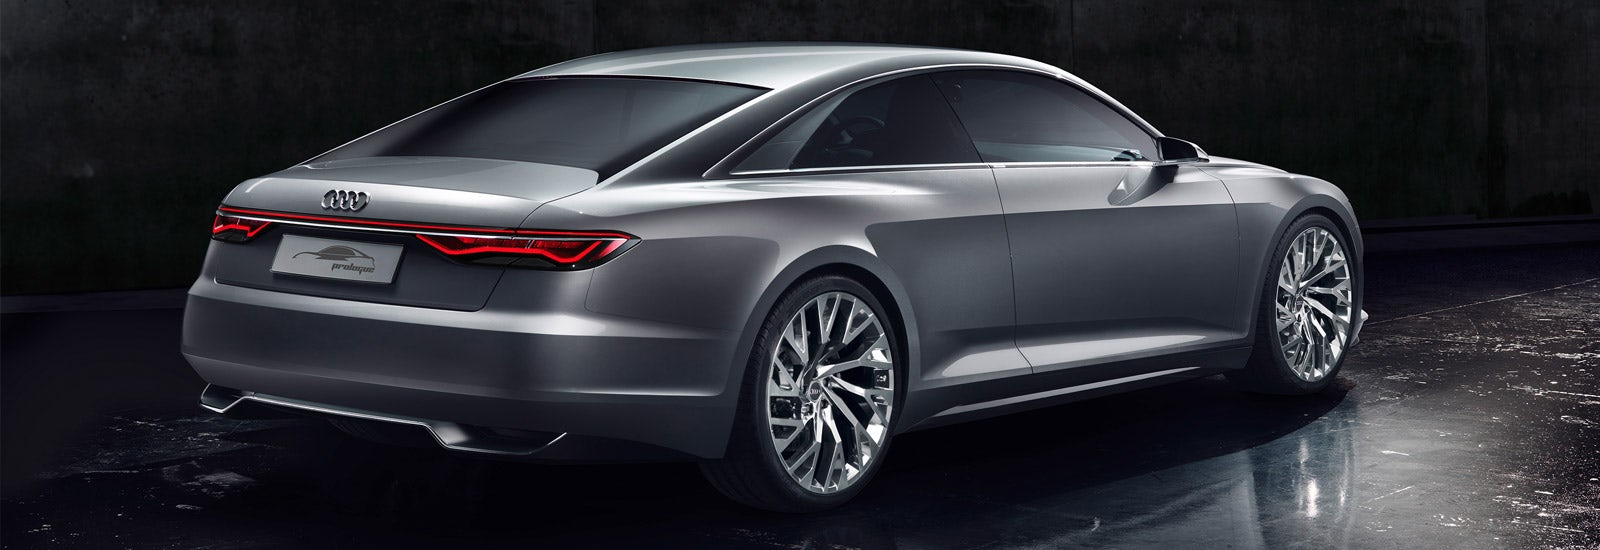 2019 Audi A6 price, specs and release date | carwow